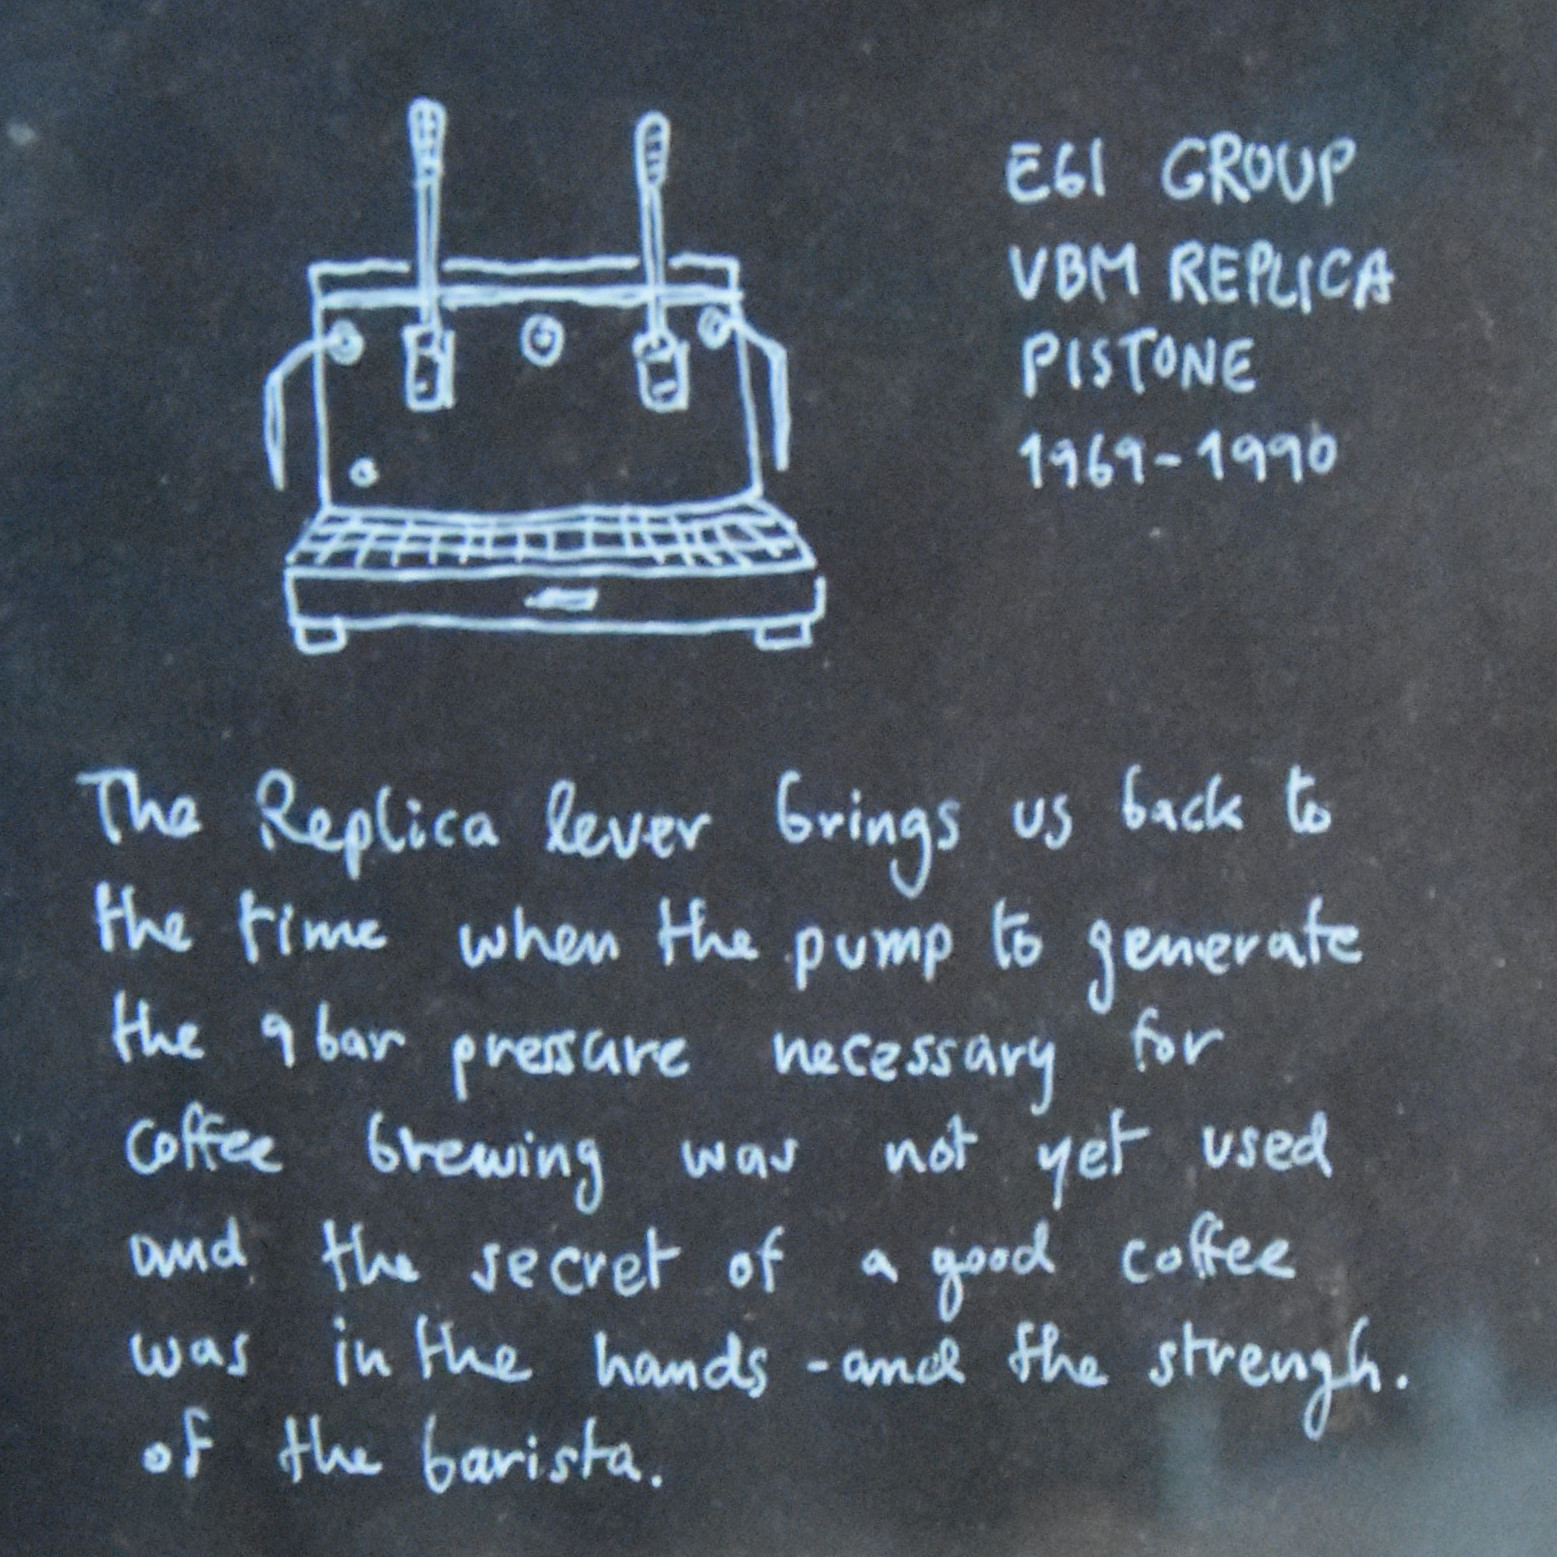 The information plaque on the counter at Graph Cafe, extolling the virtues of its lever espresso machine.